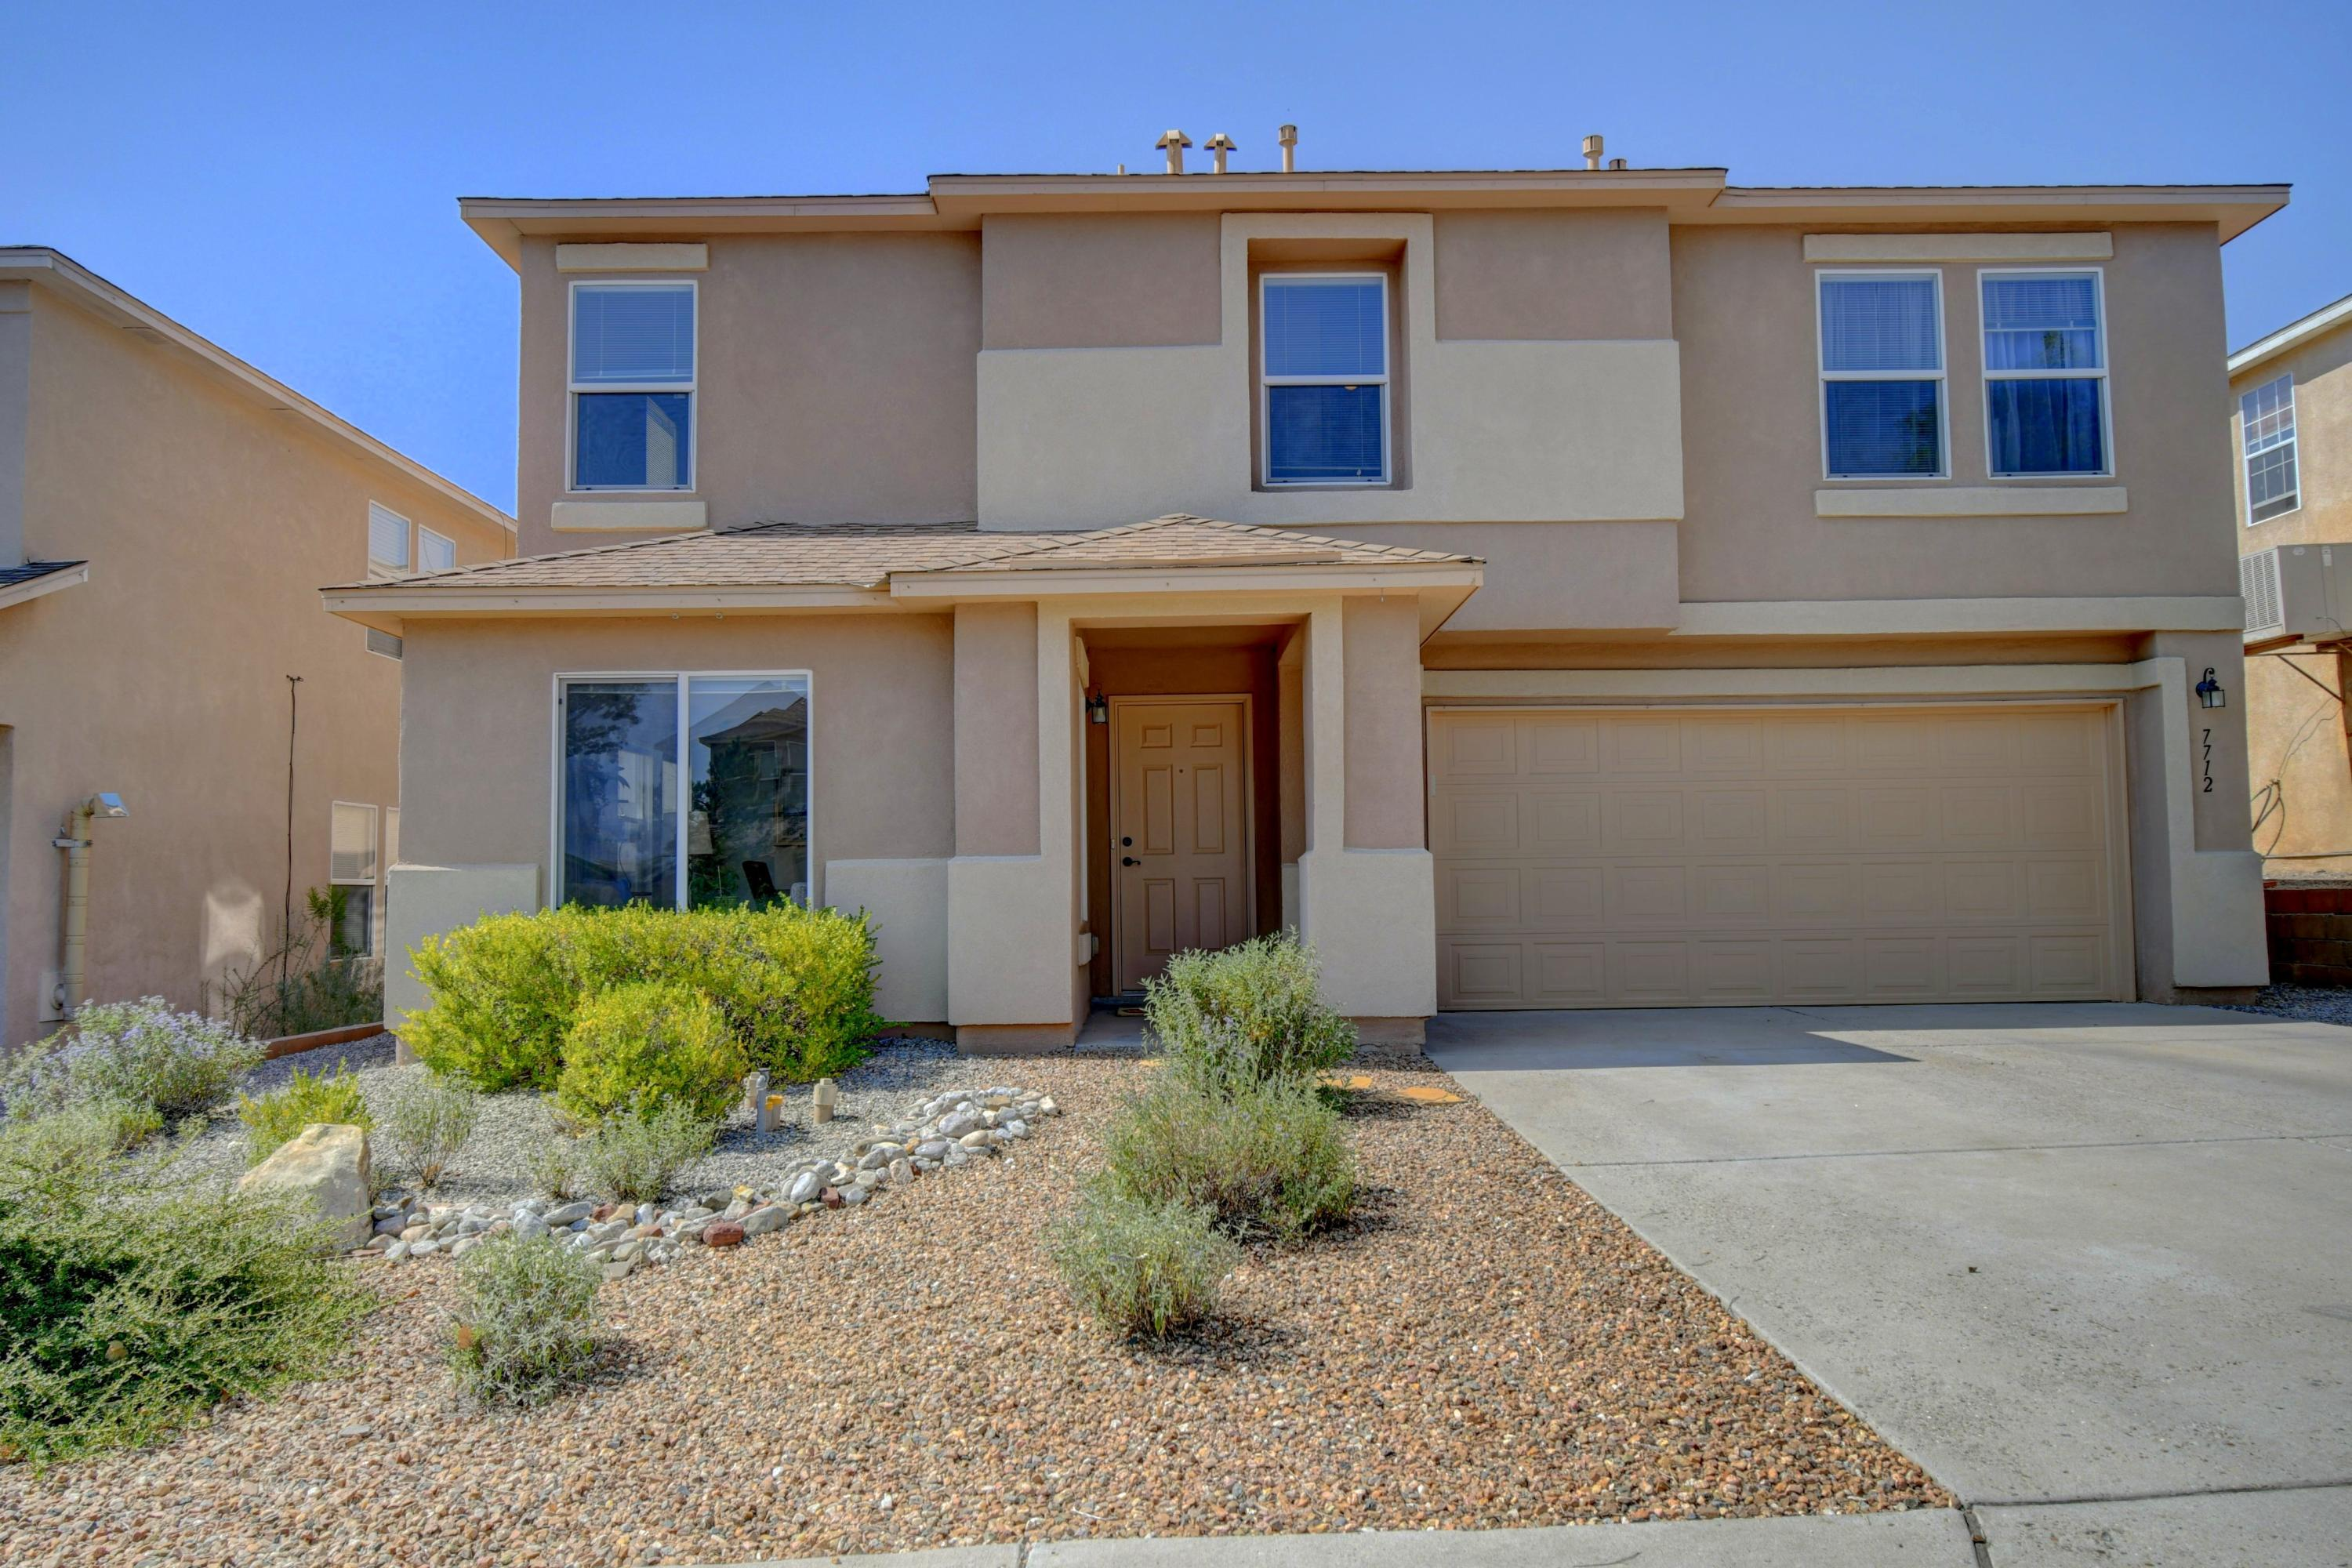 7712 BRIAR RIDGE Avenue NW Property Photo - Albuquerque, NM real estate listing